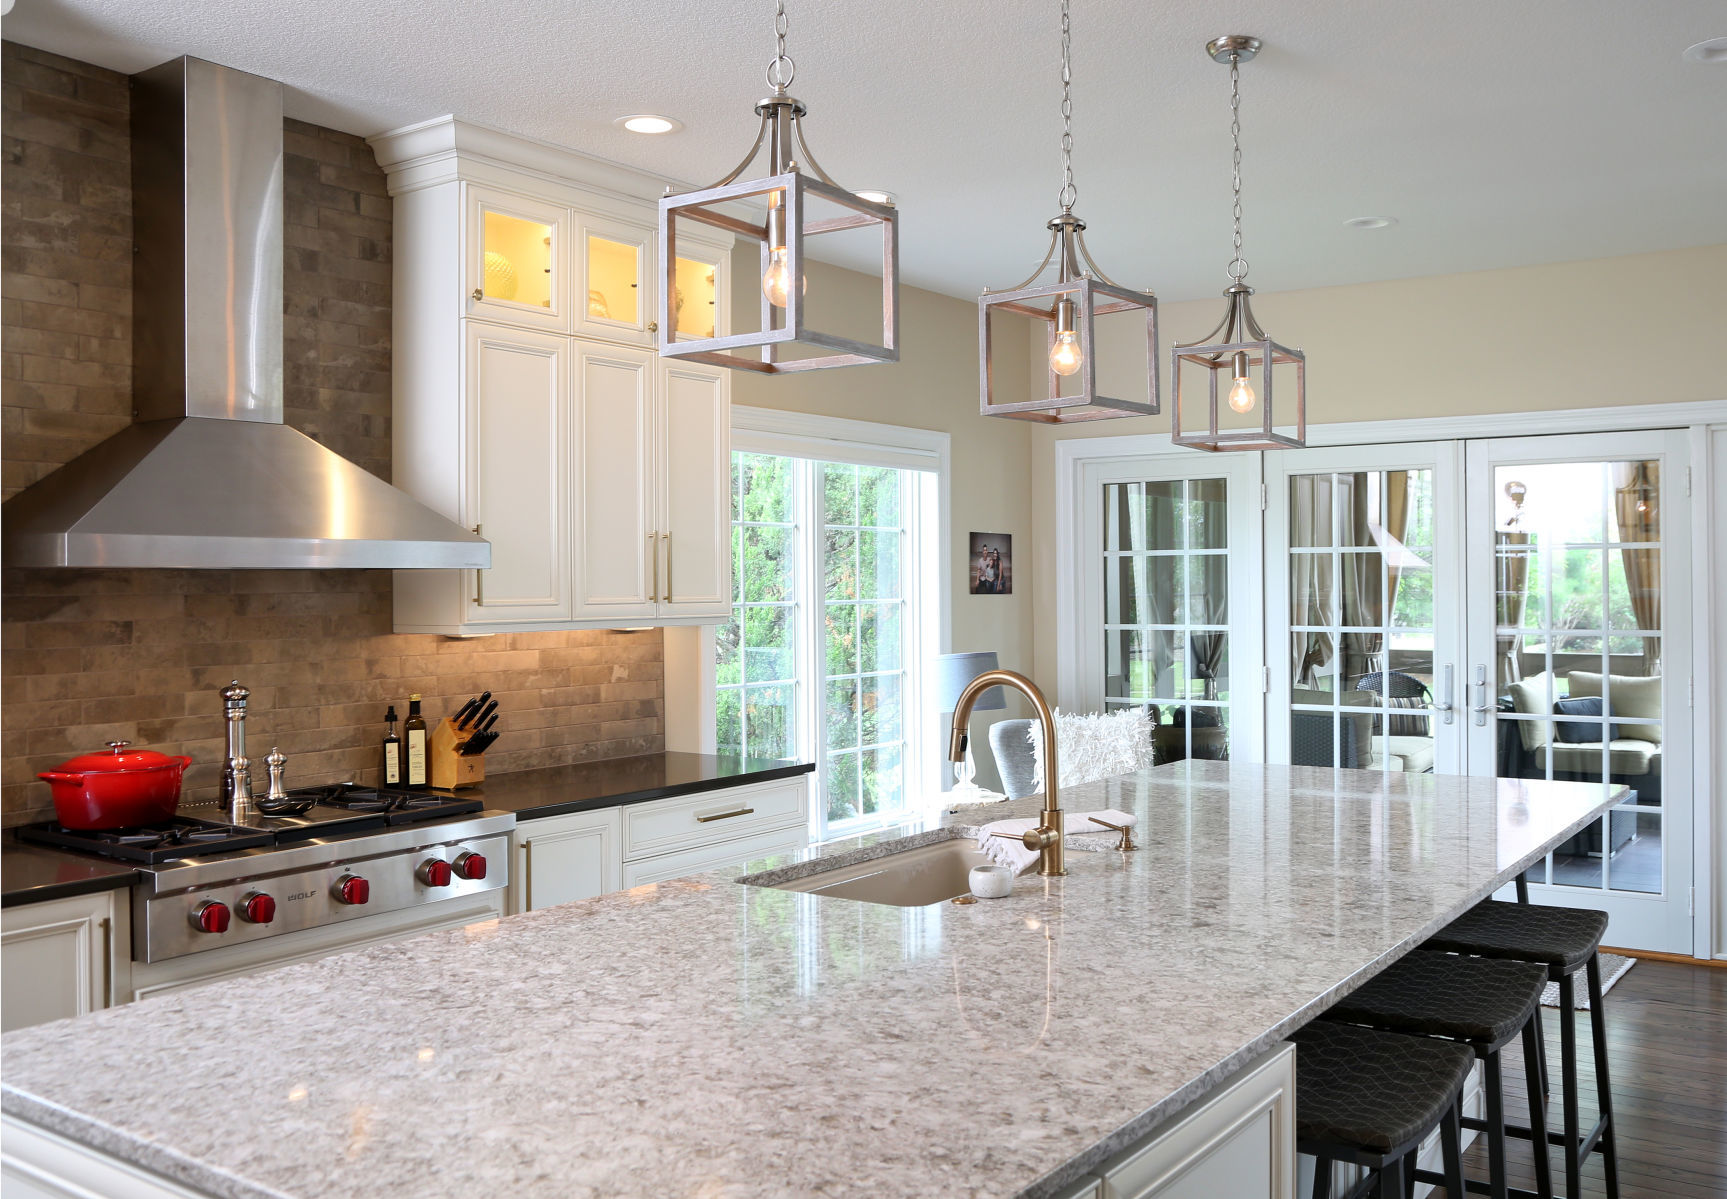 French Connection New Kitchen Design Matches Style Of House Home Wcfcourier Com